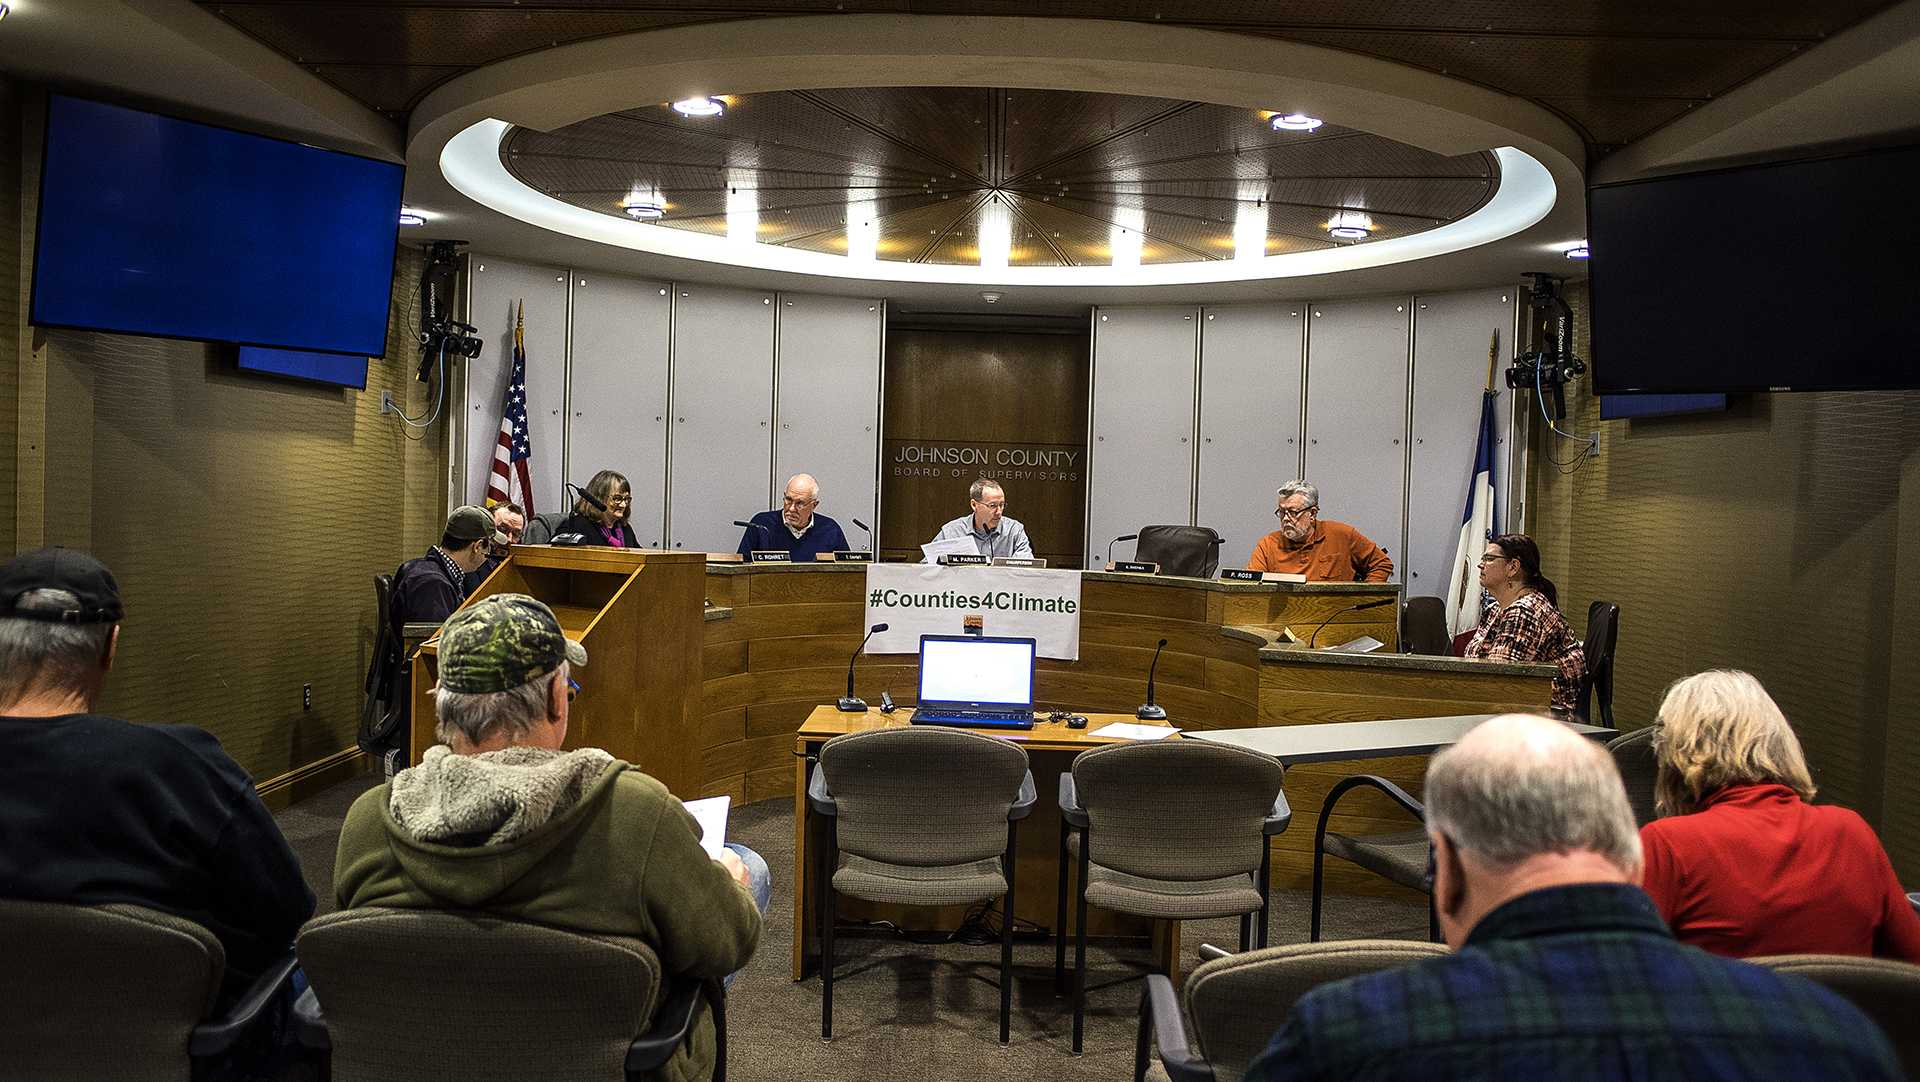 Proceedings were underway at a public hearing for the Planning and Zoning Commission in the Johnson County administration building on Monday, Feb. 12, 2018. The public hearing covered a variety of issues ranging from sustainability, infrastructure, land use and the local economy. (James Year/The Daily Iowan)